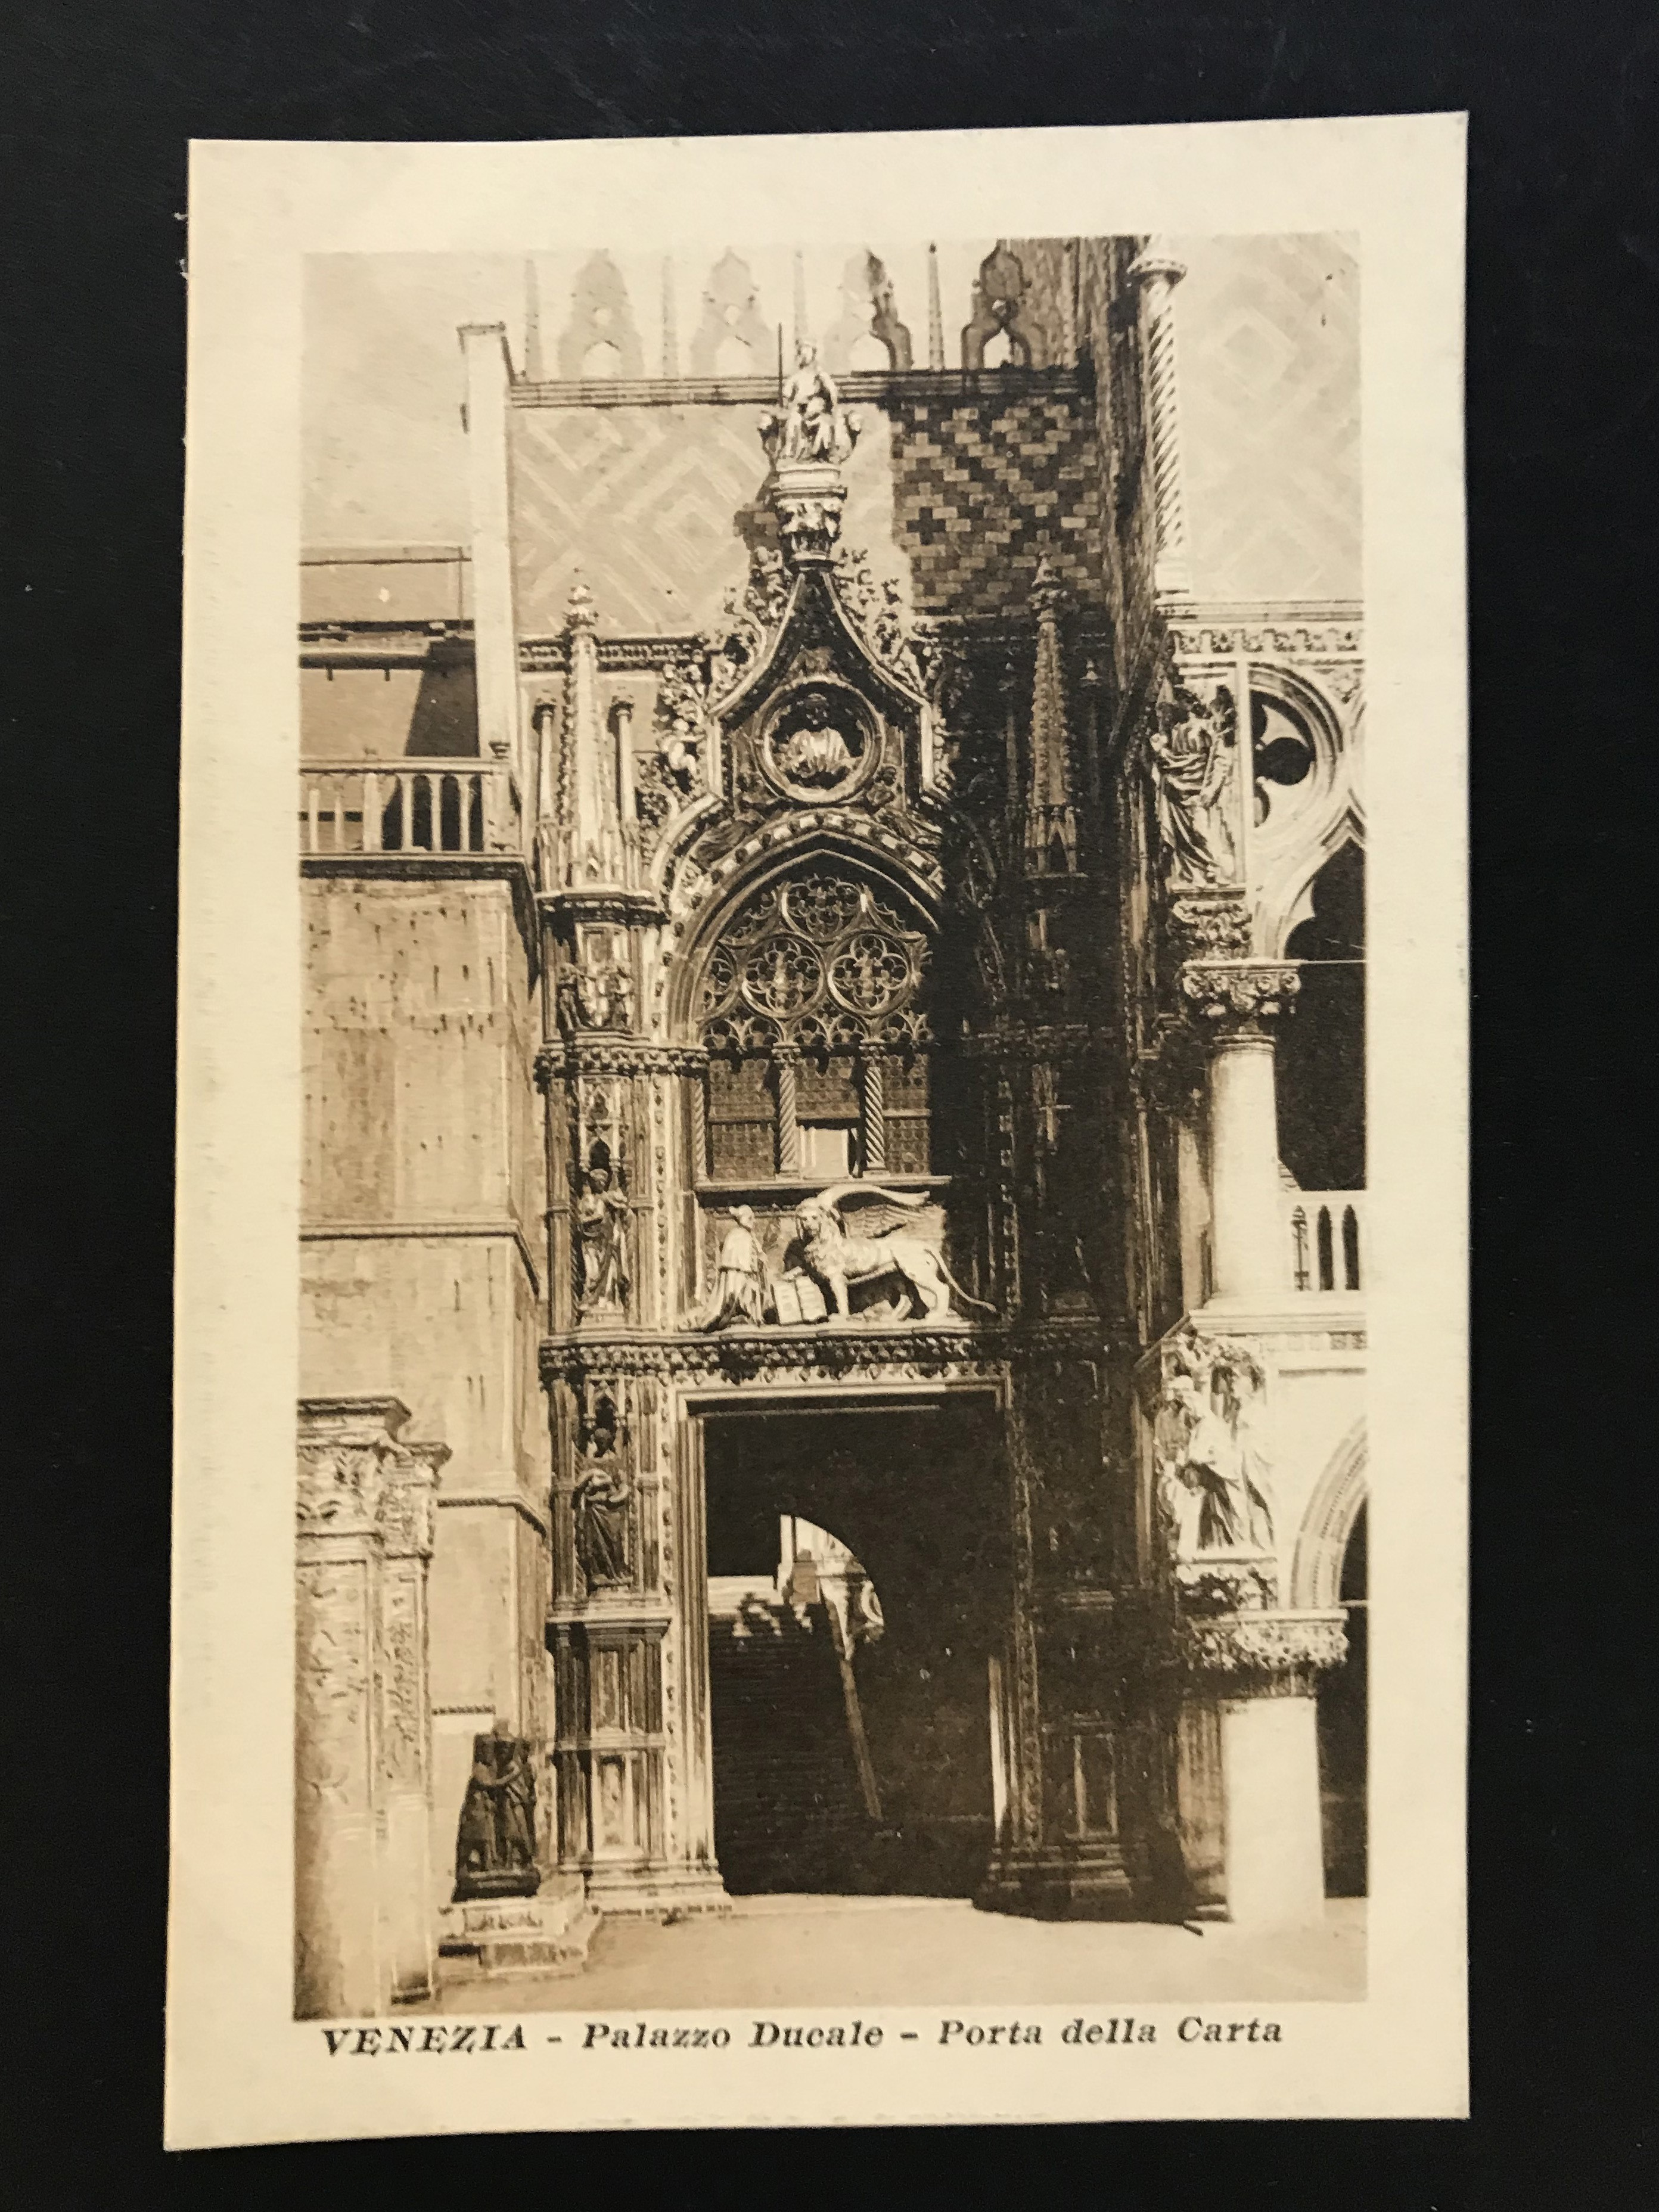 SELECTION OF VENICE RELATED POSTCARDS - Image 21 of 53